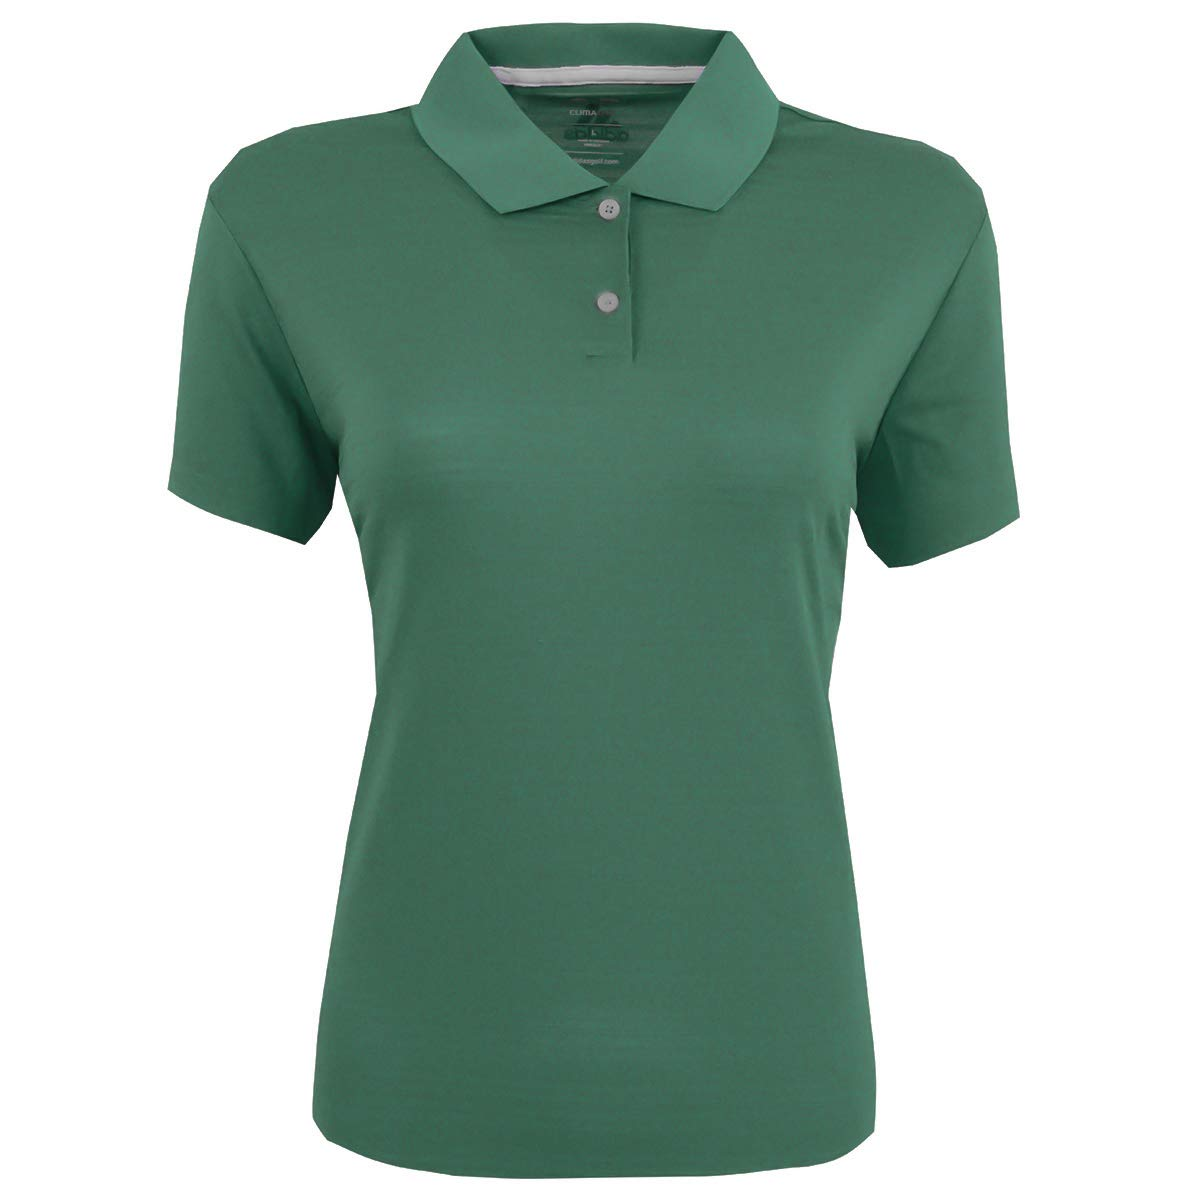 adidas Golf Womens Climalite Textured Short-Sleeve Polo (A162) -Forest -S